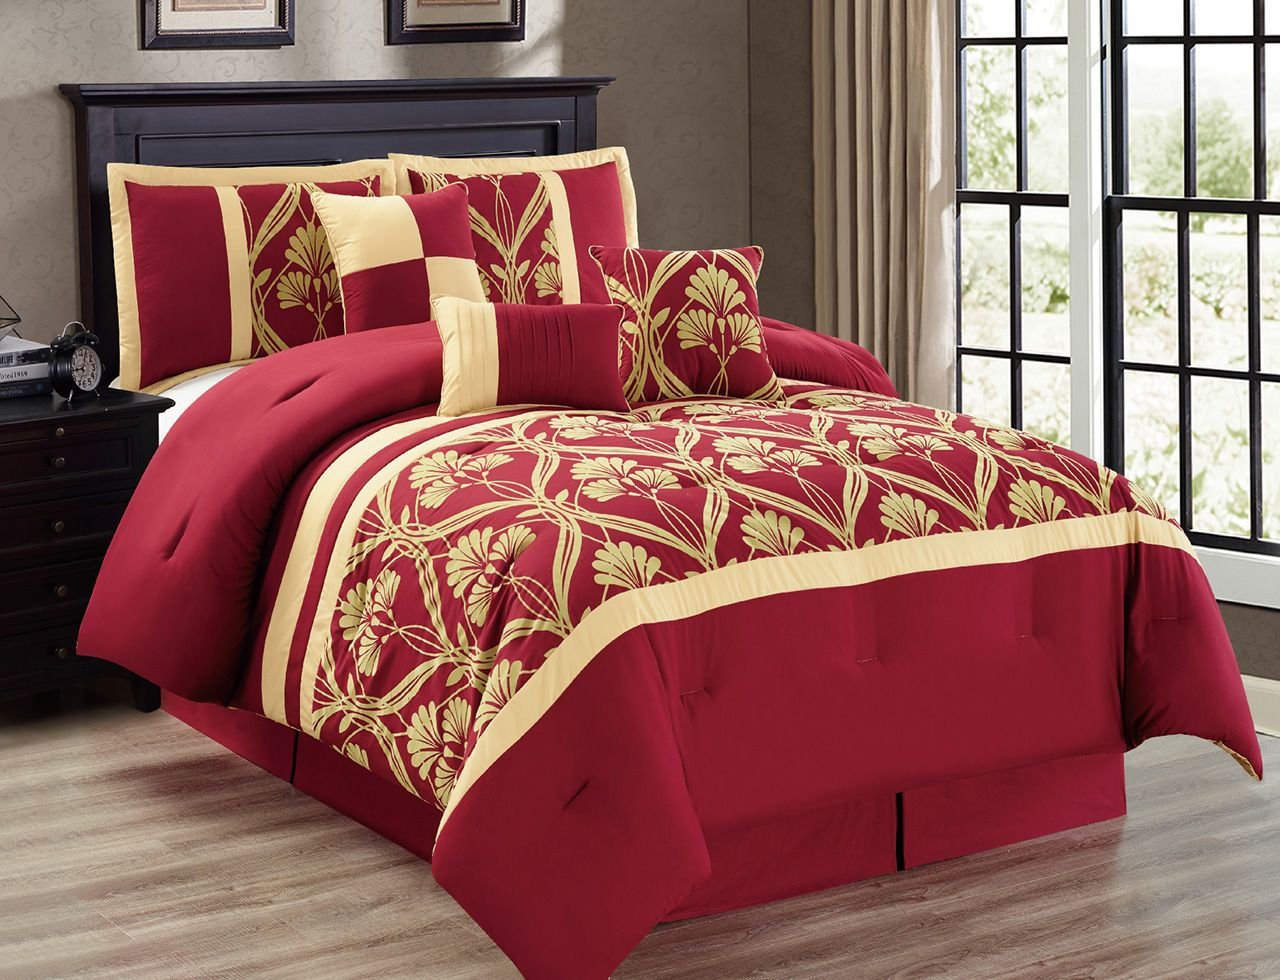 Burgundy bedding sets cheap sale ease bedding with style for Burgundy and gold bedroom designs